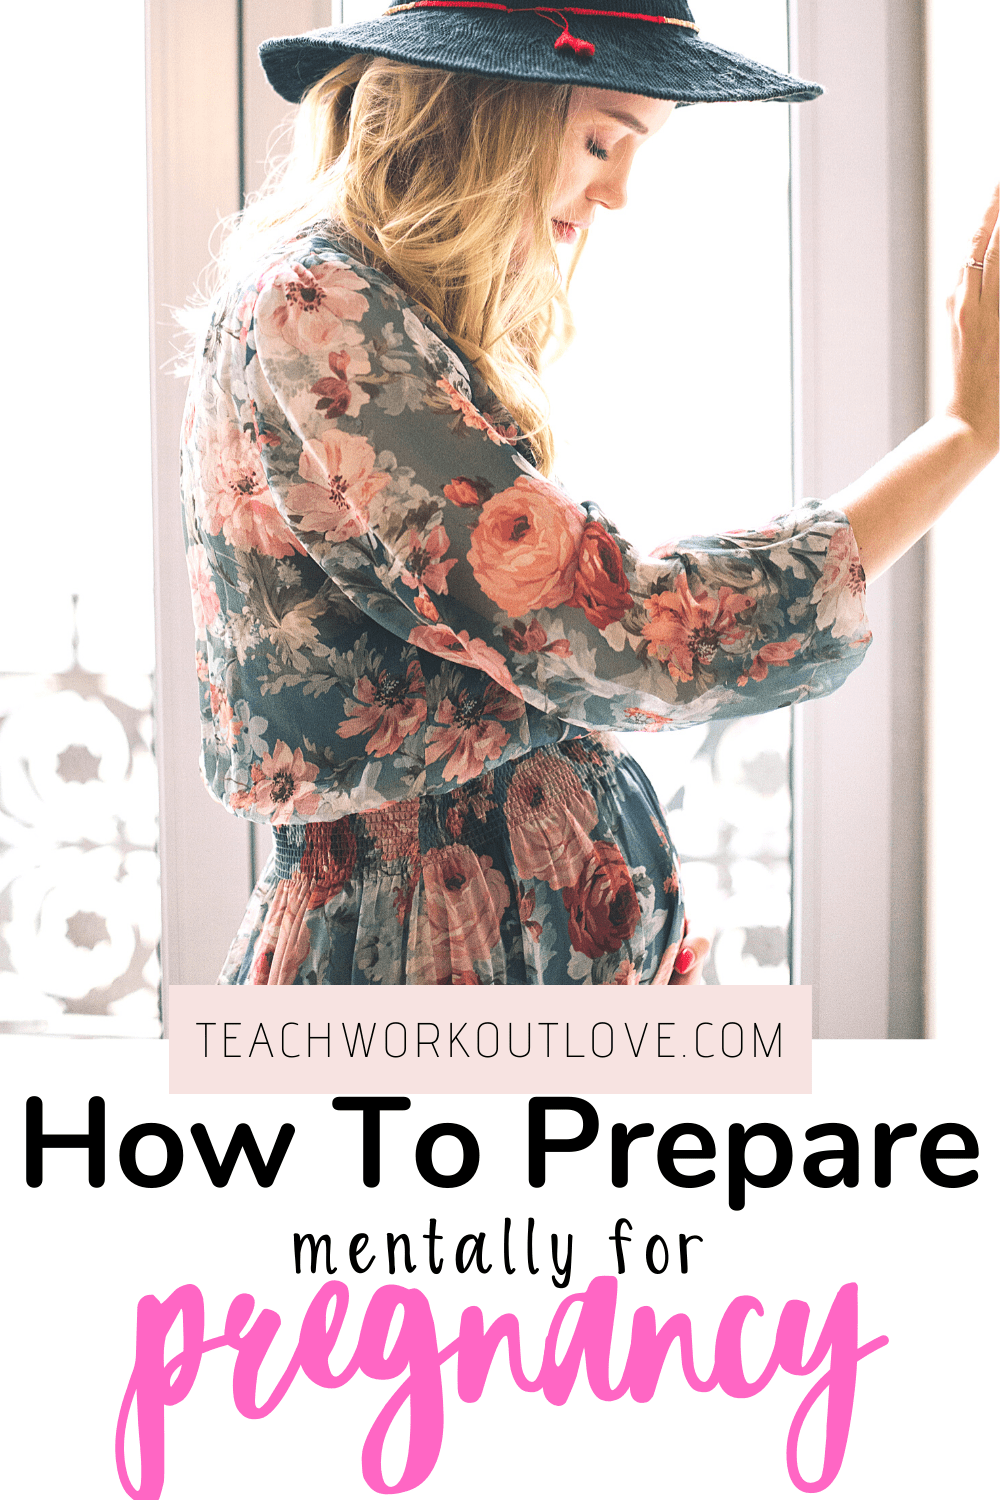 Are you mentally prepared to be pregnant? Most new moms arent! In this post, you'll learn how to prepare yourself mentally for pregnancy: